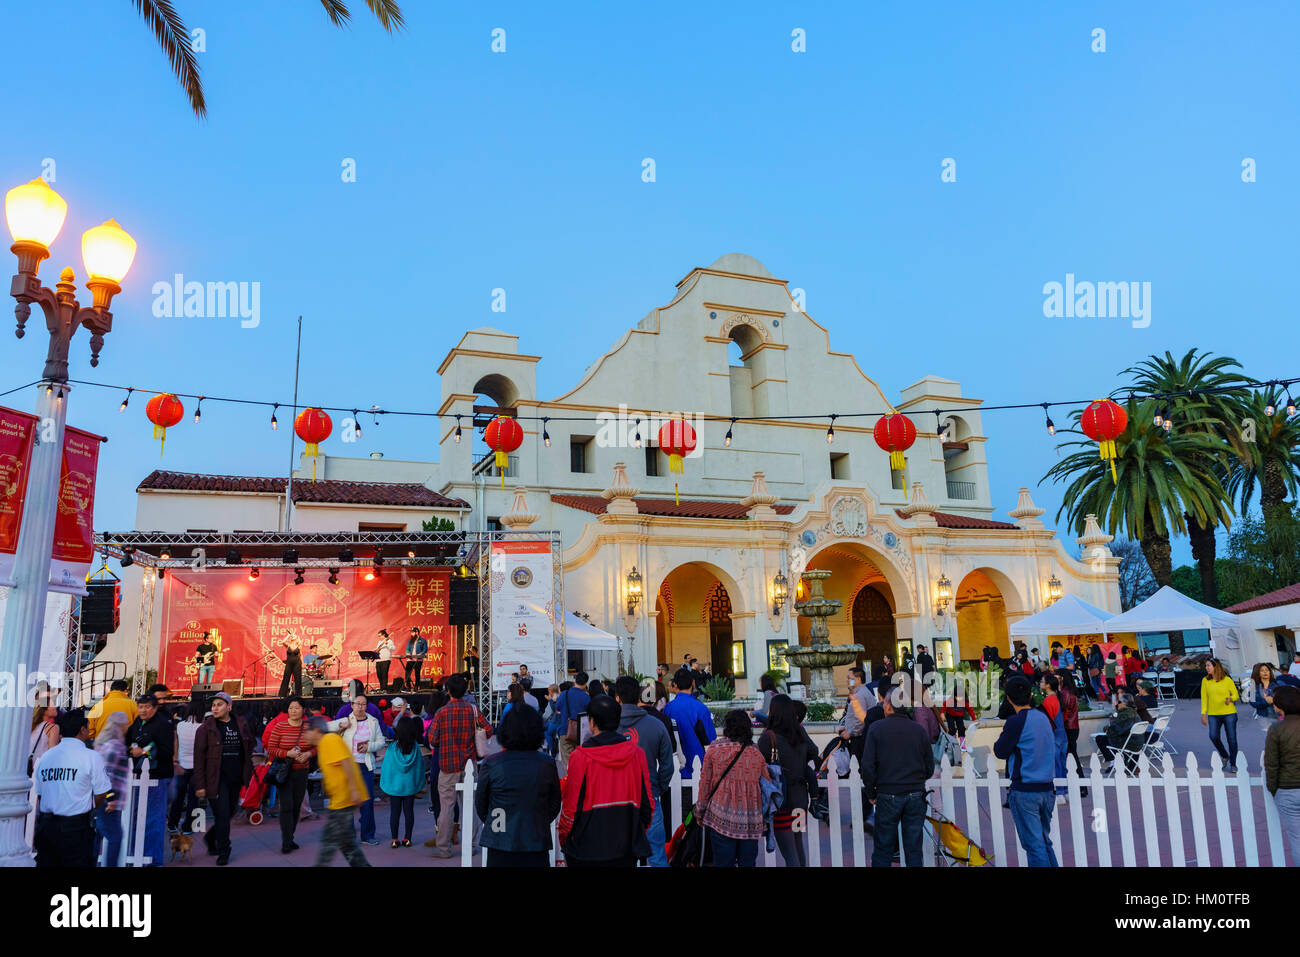 los angeles jan 28 the san gabriel chinese new year event on jan 28 2017 at san gabriel los angeles usa - Chinese New Year Los Angeles